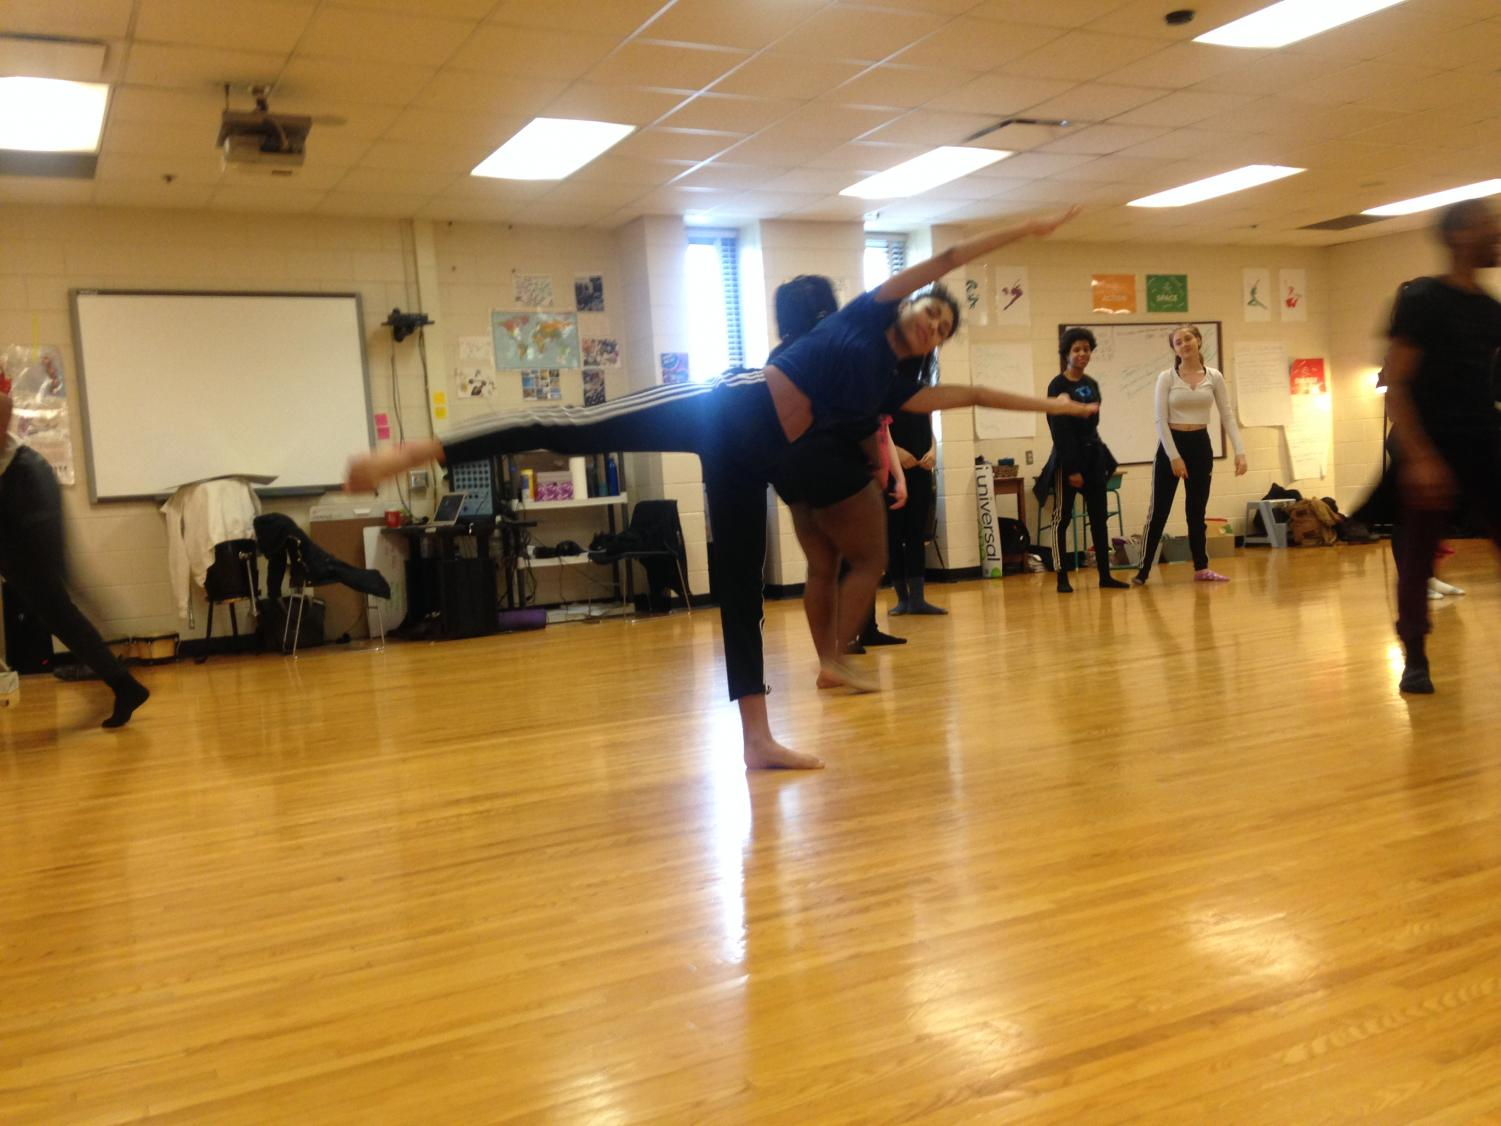 South High students warming up in the classroom. Dance can be used to express and articulate issues as art and exercise. This art form can be seen all throughout South, including school dances and the May Day parade. Haakon Anderson, a sophomore and member of Dance Company I, explained,